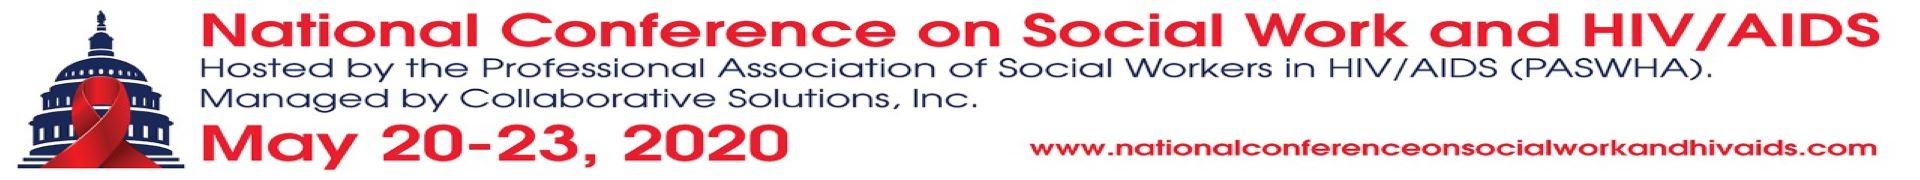 2020 National Conference on Social Work and HIV/AIDS Event Banner